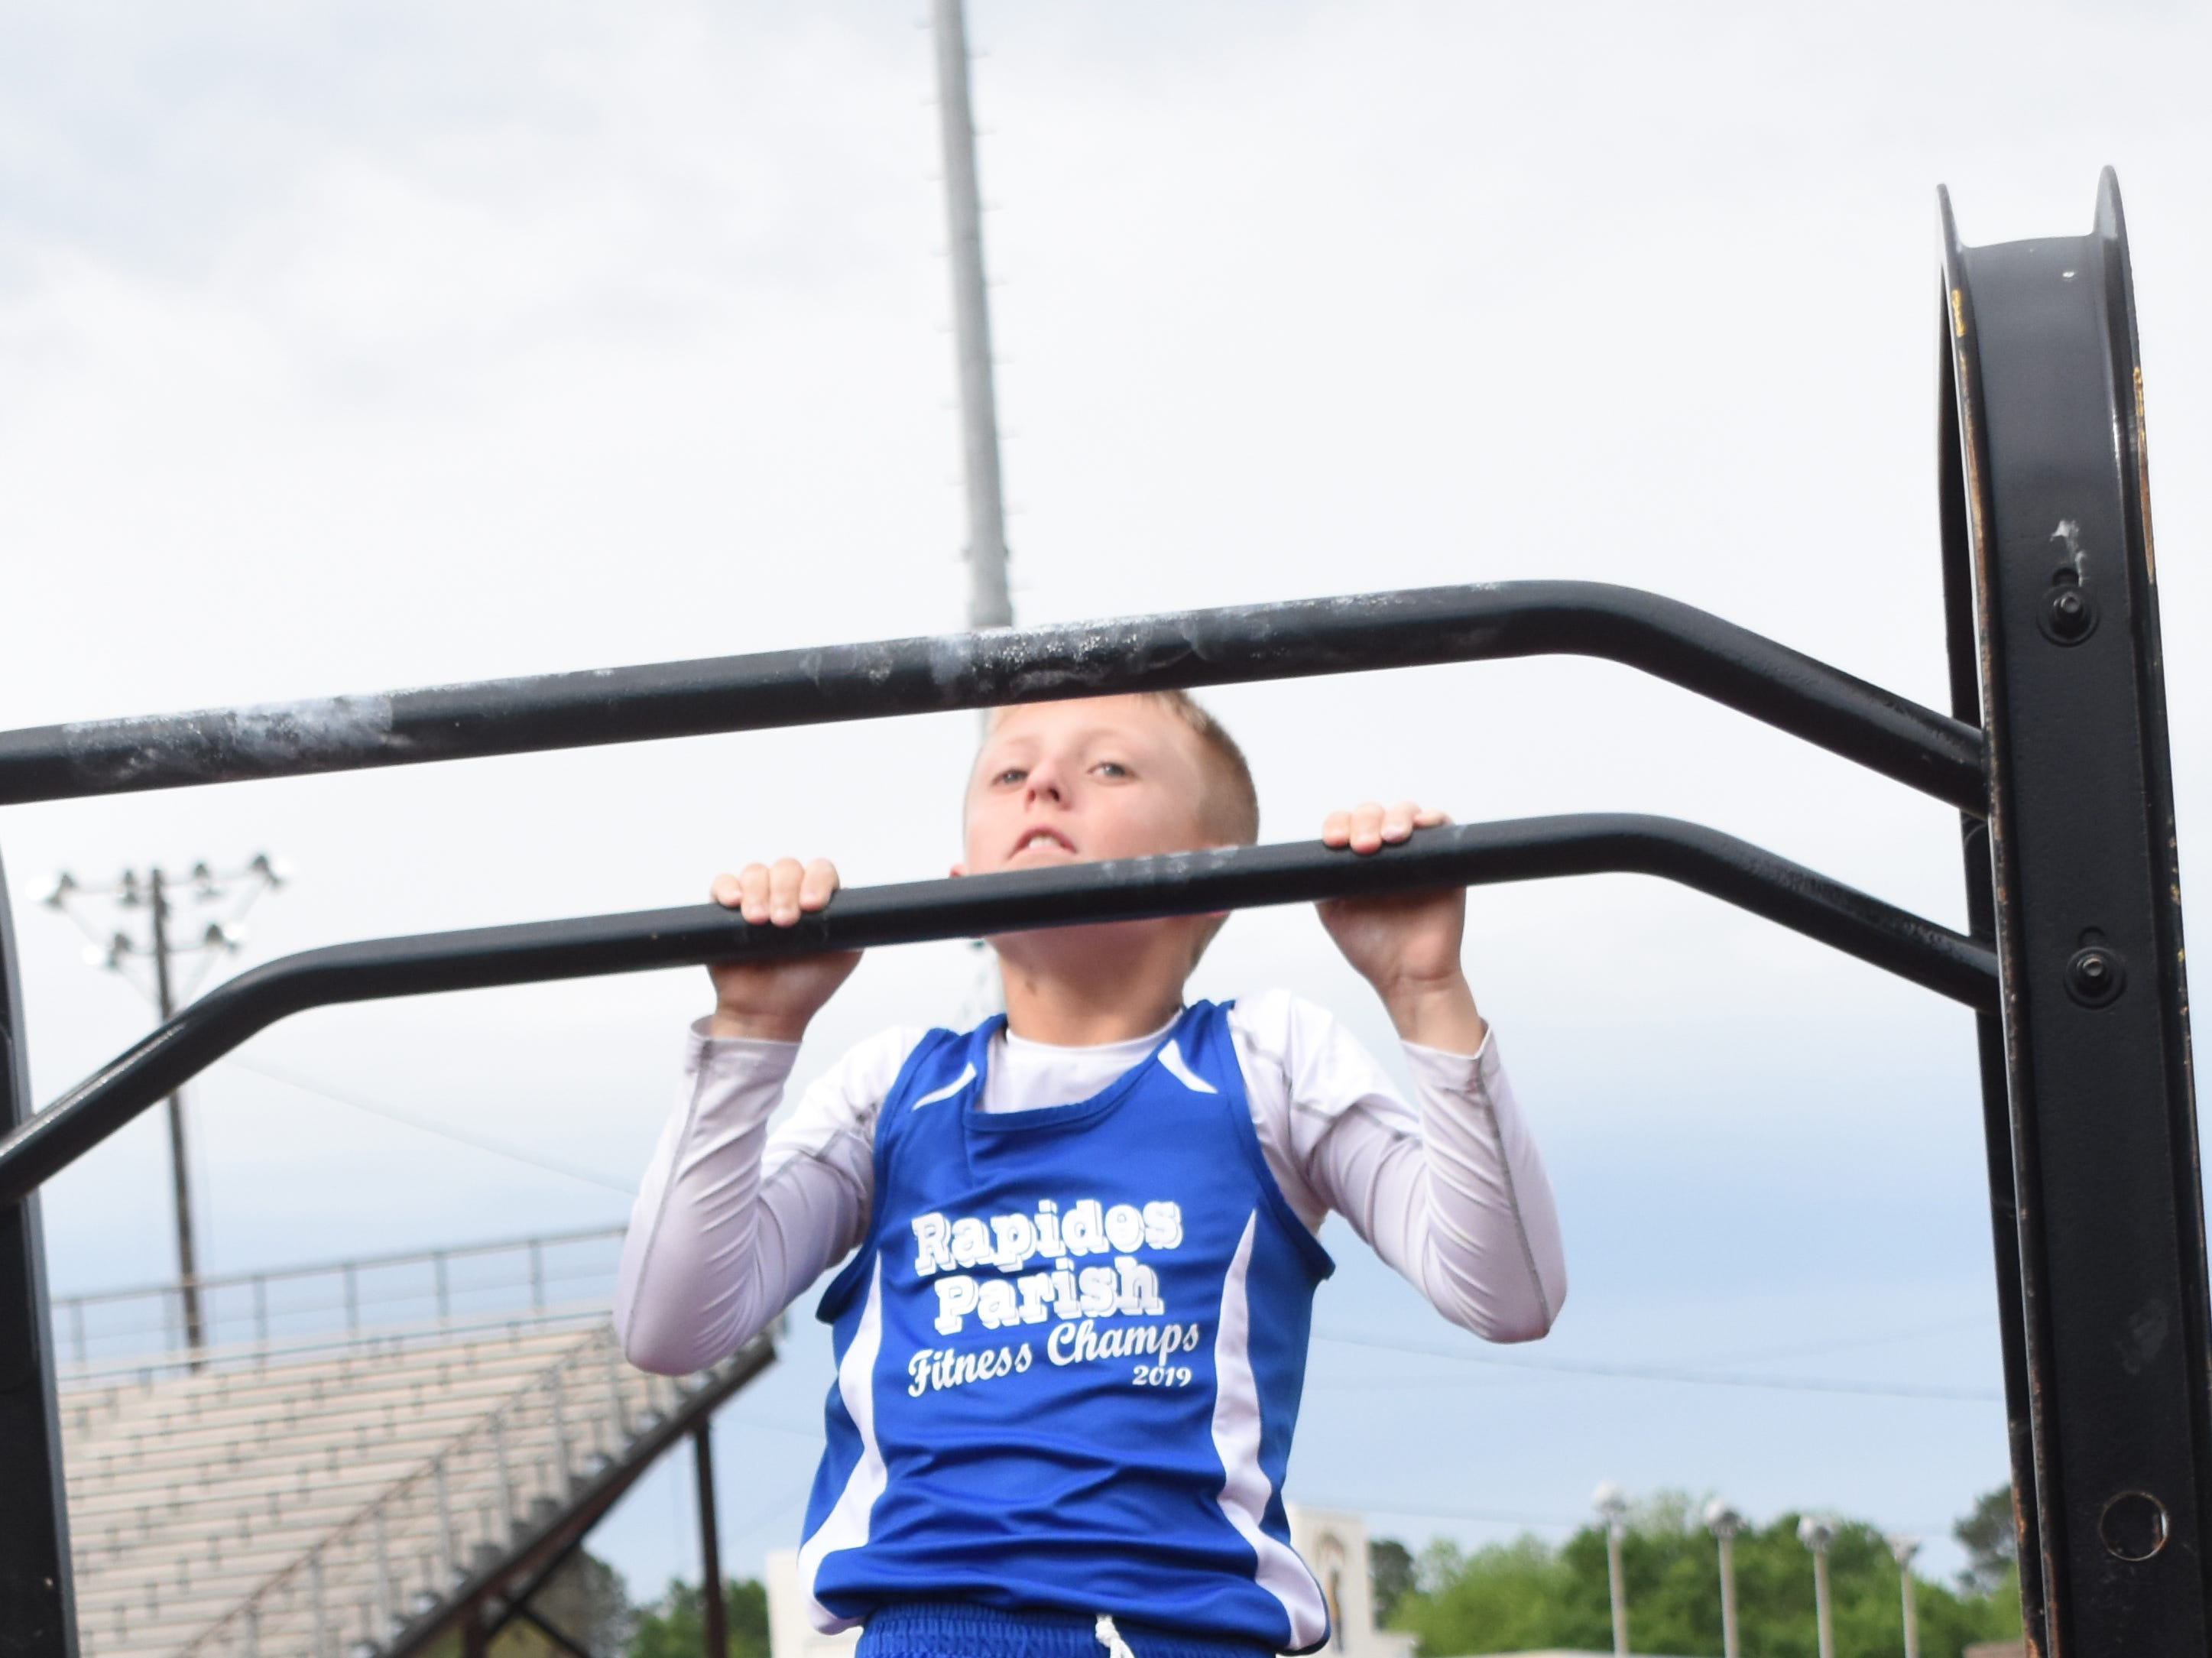 Jaxon Ross of Nachman Elementary School does pull-ups. Jaxon is part the 2019 Rapides Parish Fitness Team. Jaxon and five other Rapides Parish elementary school students will compete in the 2019 State Championship Fitness Meet to be held Saturday, April 27, 2019 at Alexandria Senior High School. The meet is part of the Governor's Council on Fitness and Sports. Students from throughout Louisiana will compete in seven events: 50-yard dash, sit and reach, pull-ups,  shuttle run, curl-ups (sit-ups), standing long jump, and the 600-yard run. For the past three years, the Rapides Parish Fitness Team has placed first at the meet. Dean was the highest scoring boy last year and won the title of 2018 Mr. Fitness for the State of Louisiana. The meet will be from 10 a.m. to 2 p.m.